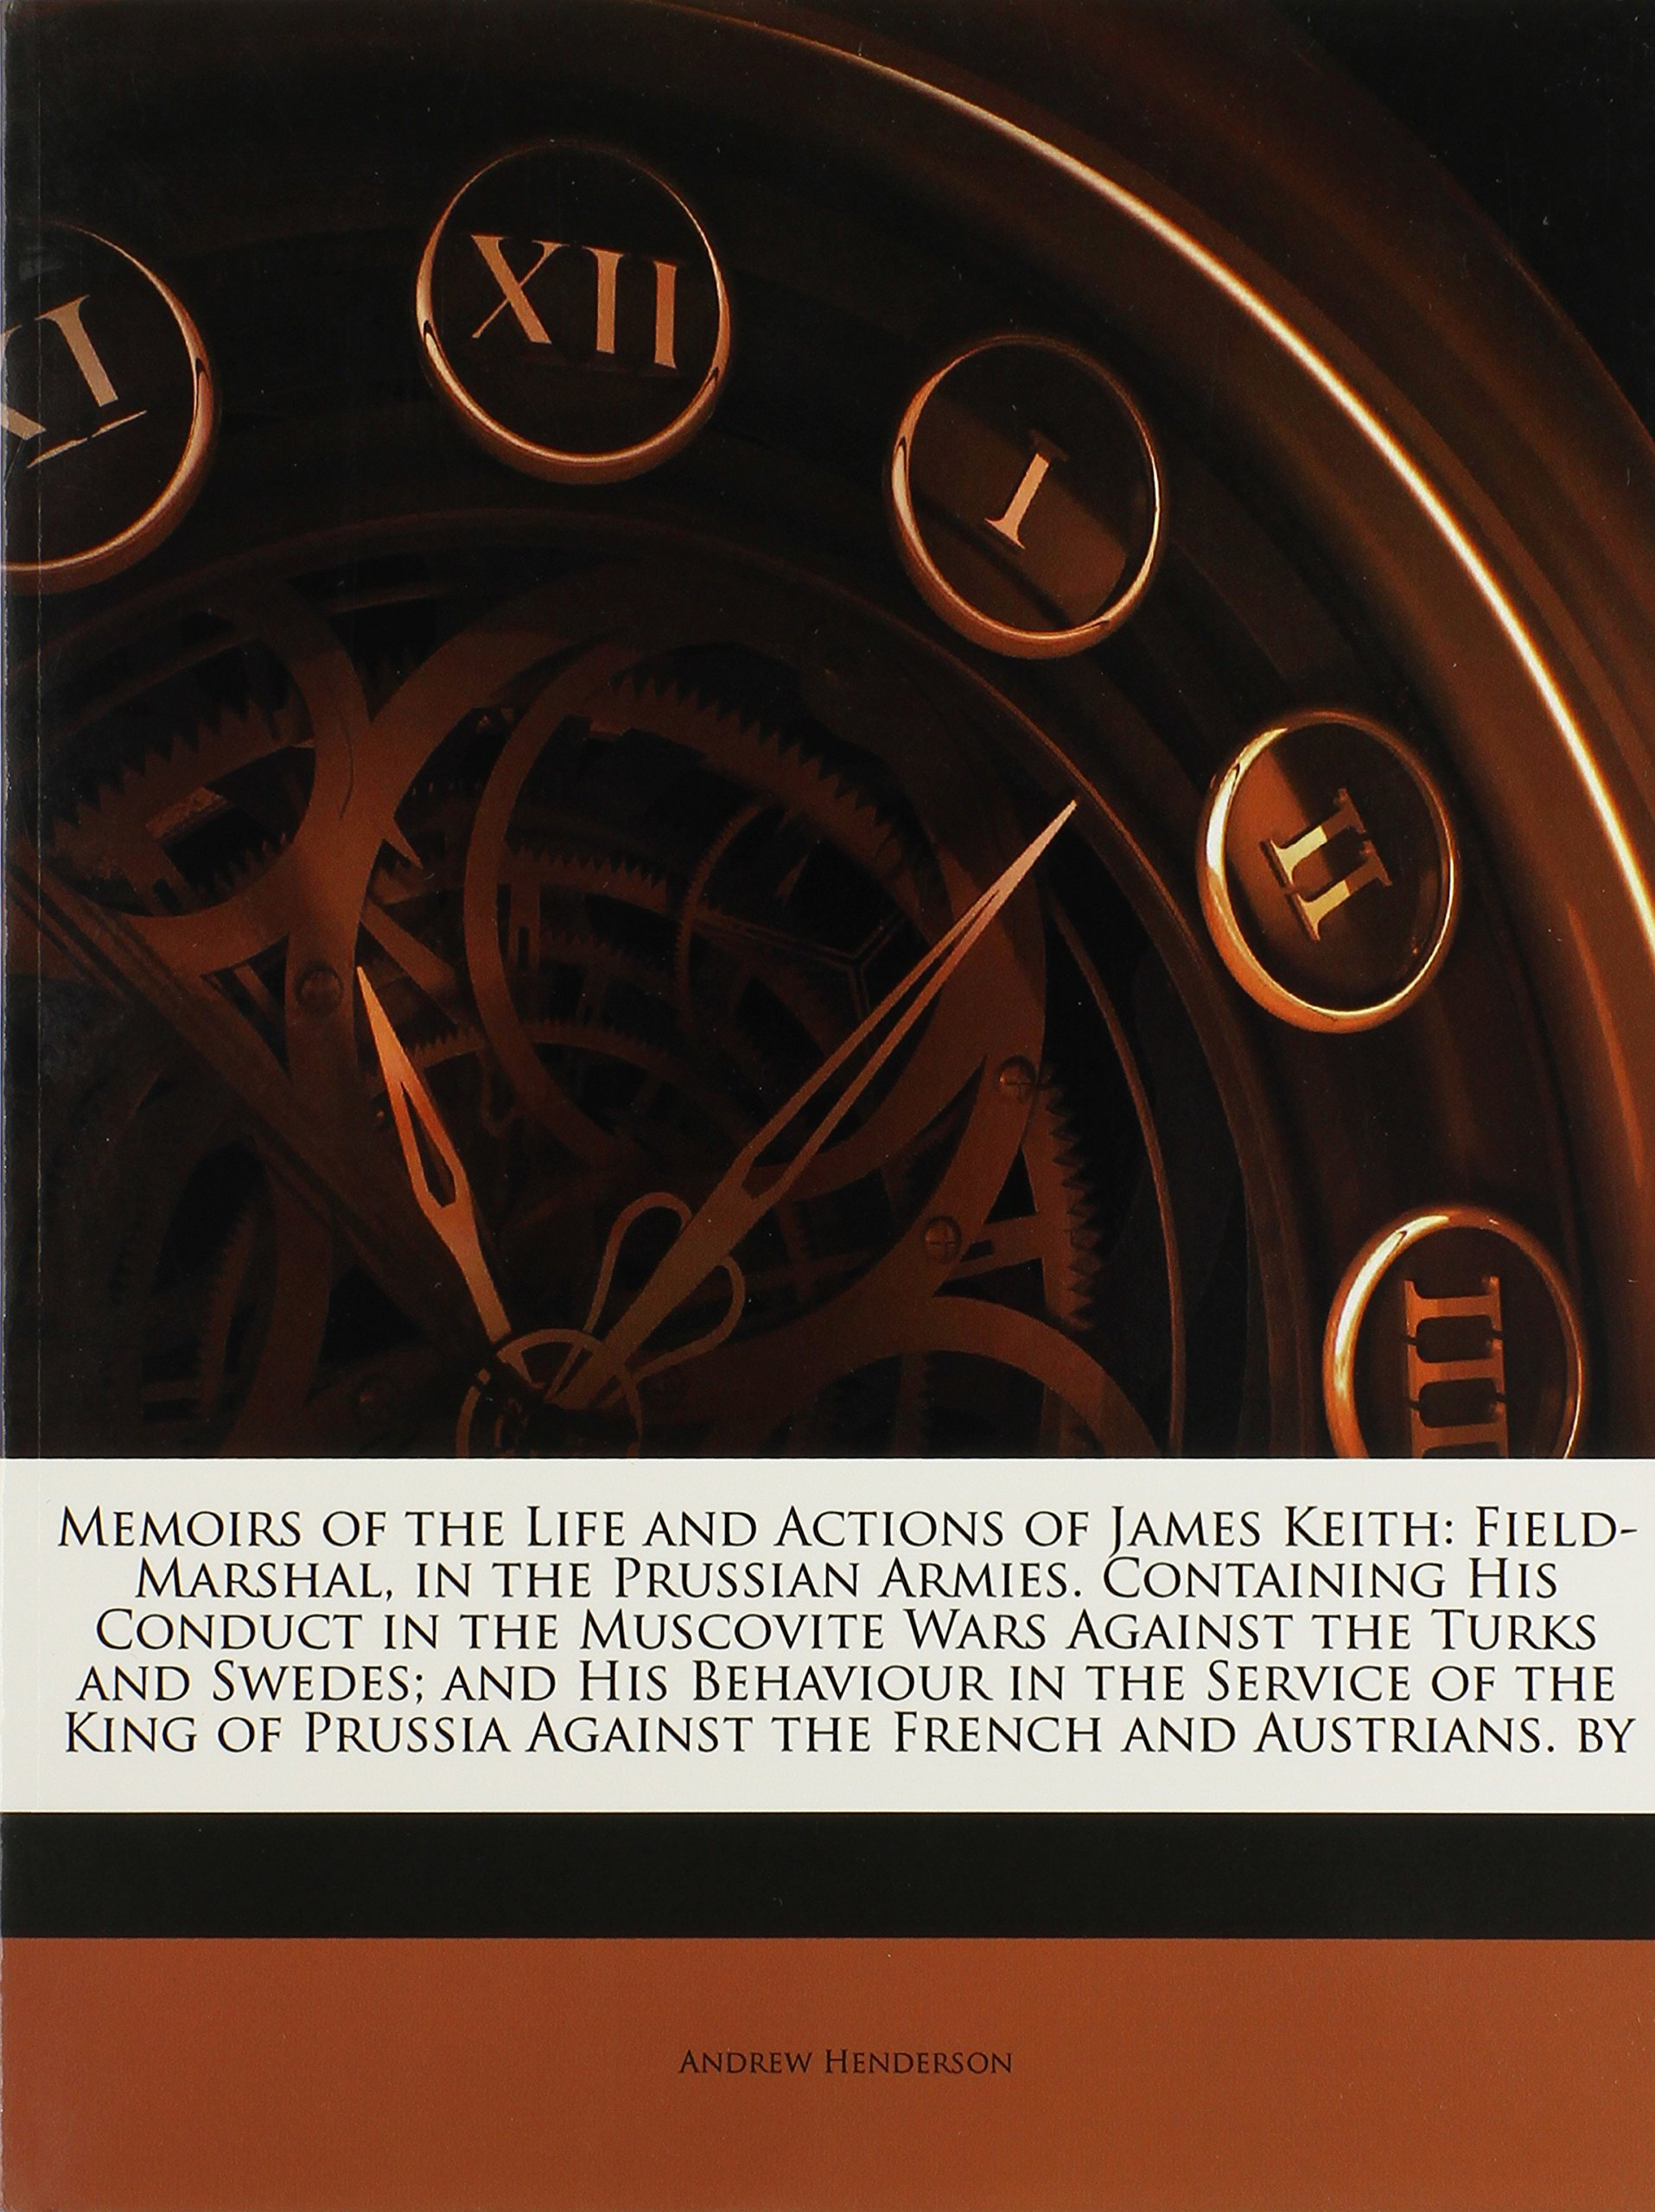 Memoirs of the Life and Actions of James Keith: Field-Marshal, in the Prussian Armies. Containing His Conduct in the Muscovite Wars Against the Turks ... Prussia Against the French and Austrians. by pdf